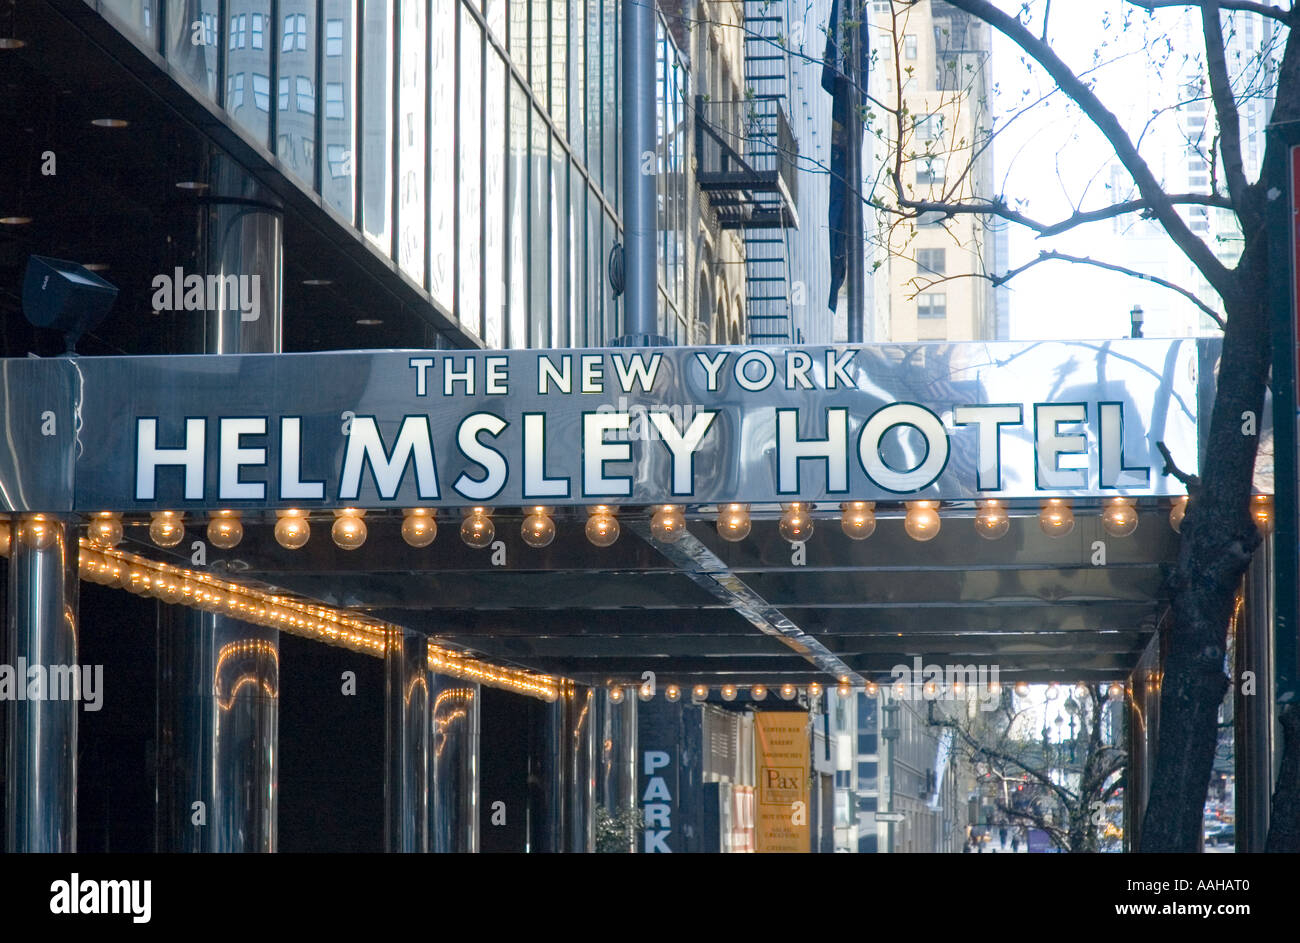 the helmsley hotel on 42nd street in new york city Stock Photo